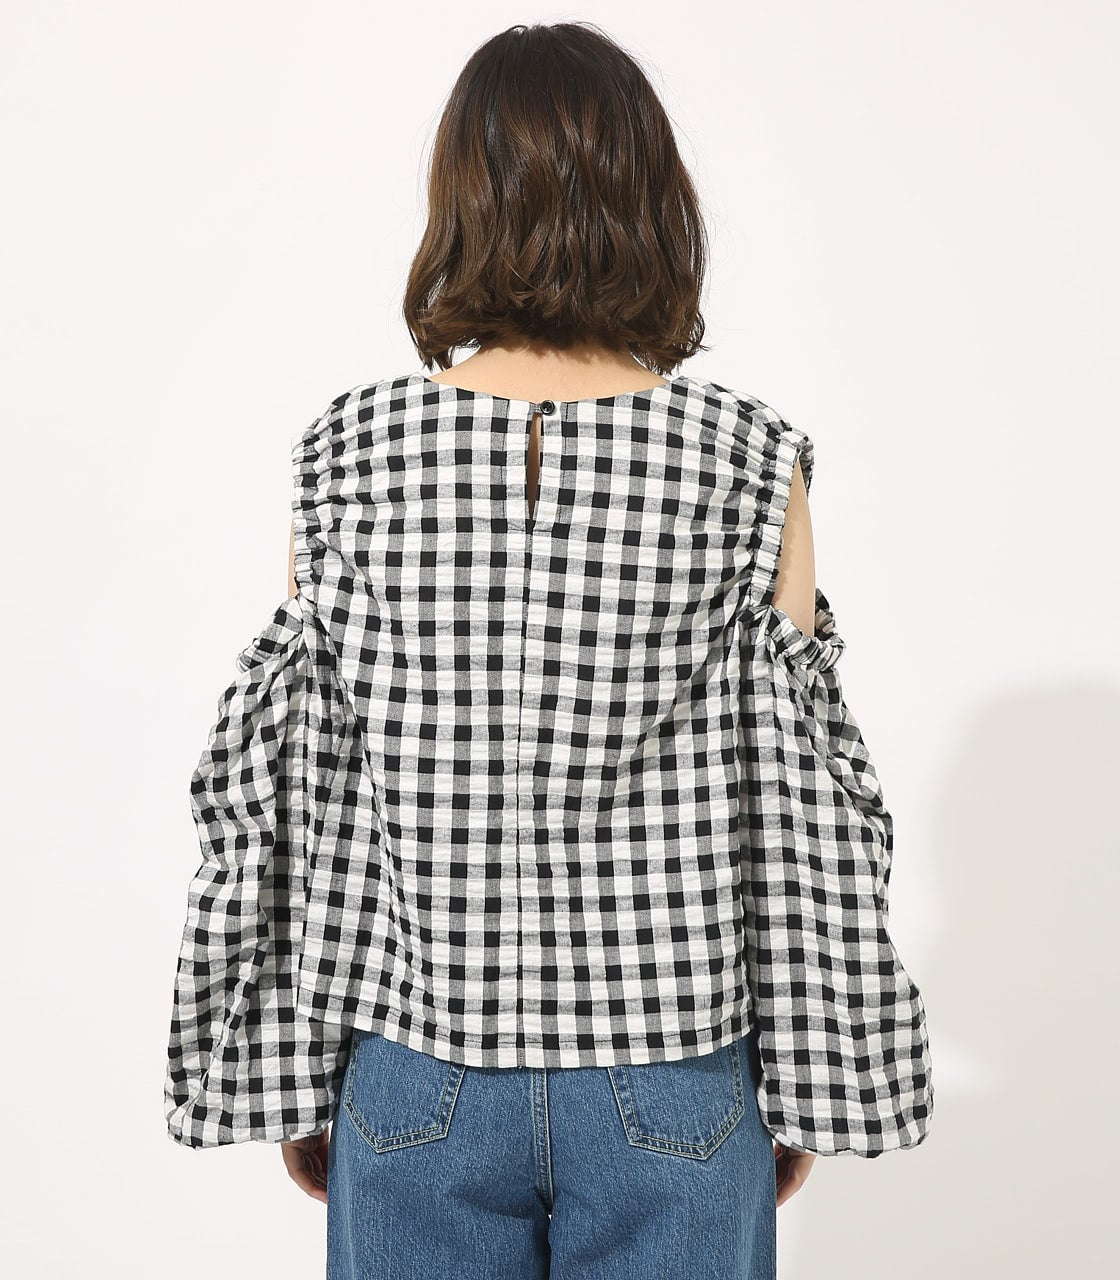 【AZUL BY MOUSSY】GINGHAM OPEN SHOULDER TOPS 【MOOK49掲載 90053】 詳細画像 柄BLK 6